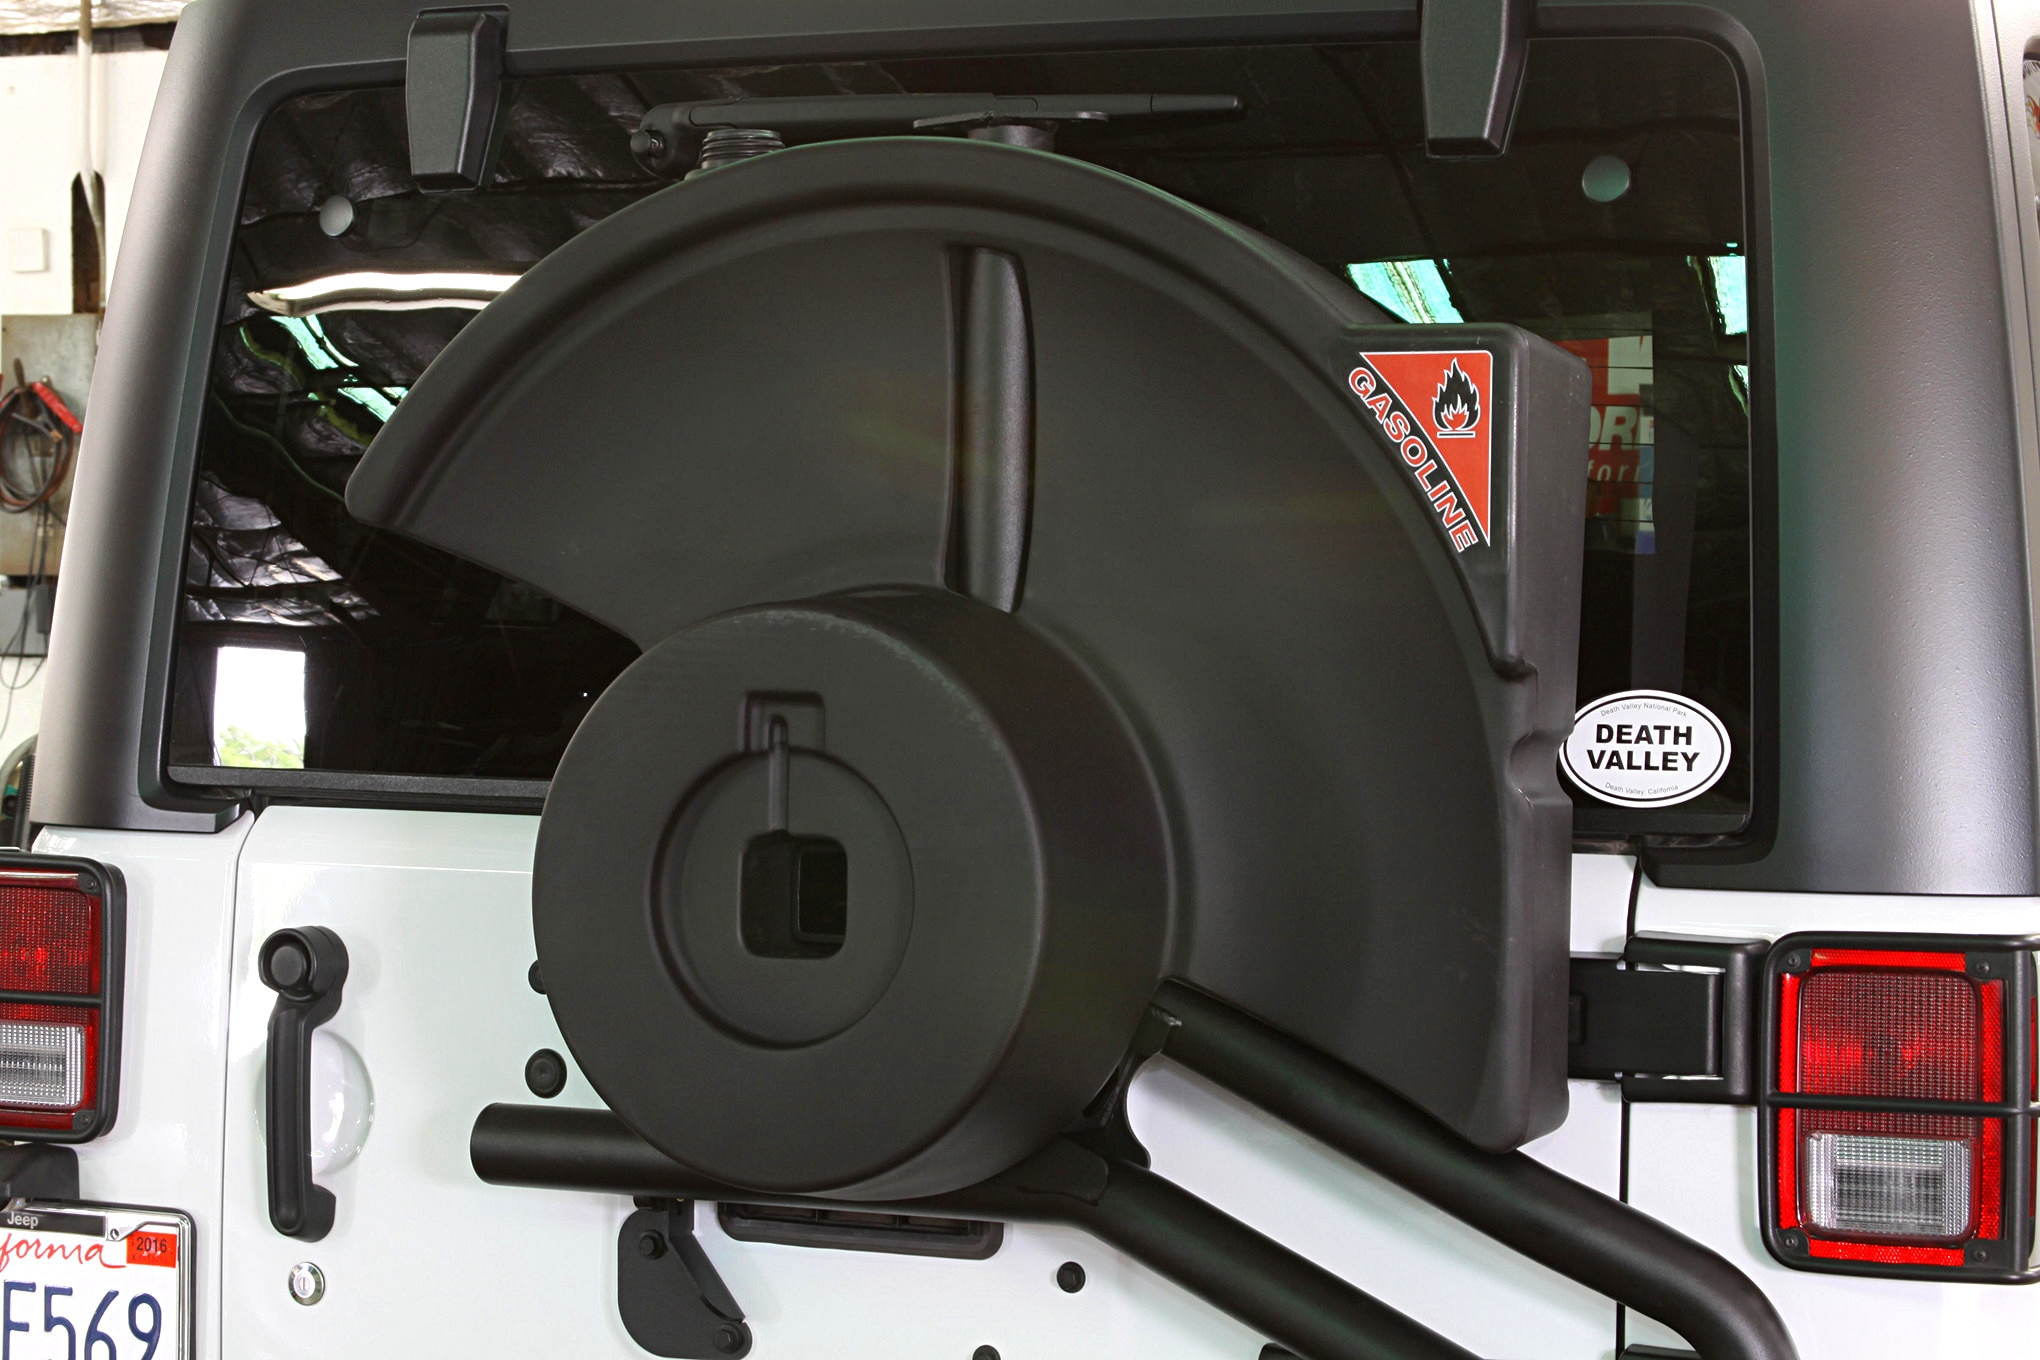 Another option we loved was the AEV 10.2-gallon fuel caddy. Made from ultra-tough cross-link polyethylene (just like what used in many factory fuel tanks), it's a great way to carry extra fuel without the bulk of external jerry cans. The fuel caddy has several attachment points to the tire carrier. The system is also designed to accommodate wiring for all the various accessories. It's also fully vented and uses an OE-style cap. The fuel tank's high-mount position means it's easy to gravity feed fuel into the main fuel tank with the included shaker siphon, and the fuel tank allows the carrier to accommodate a 40-inch.